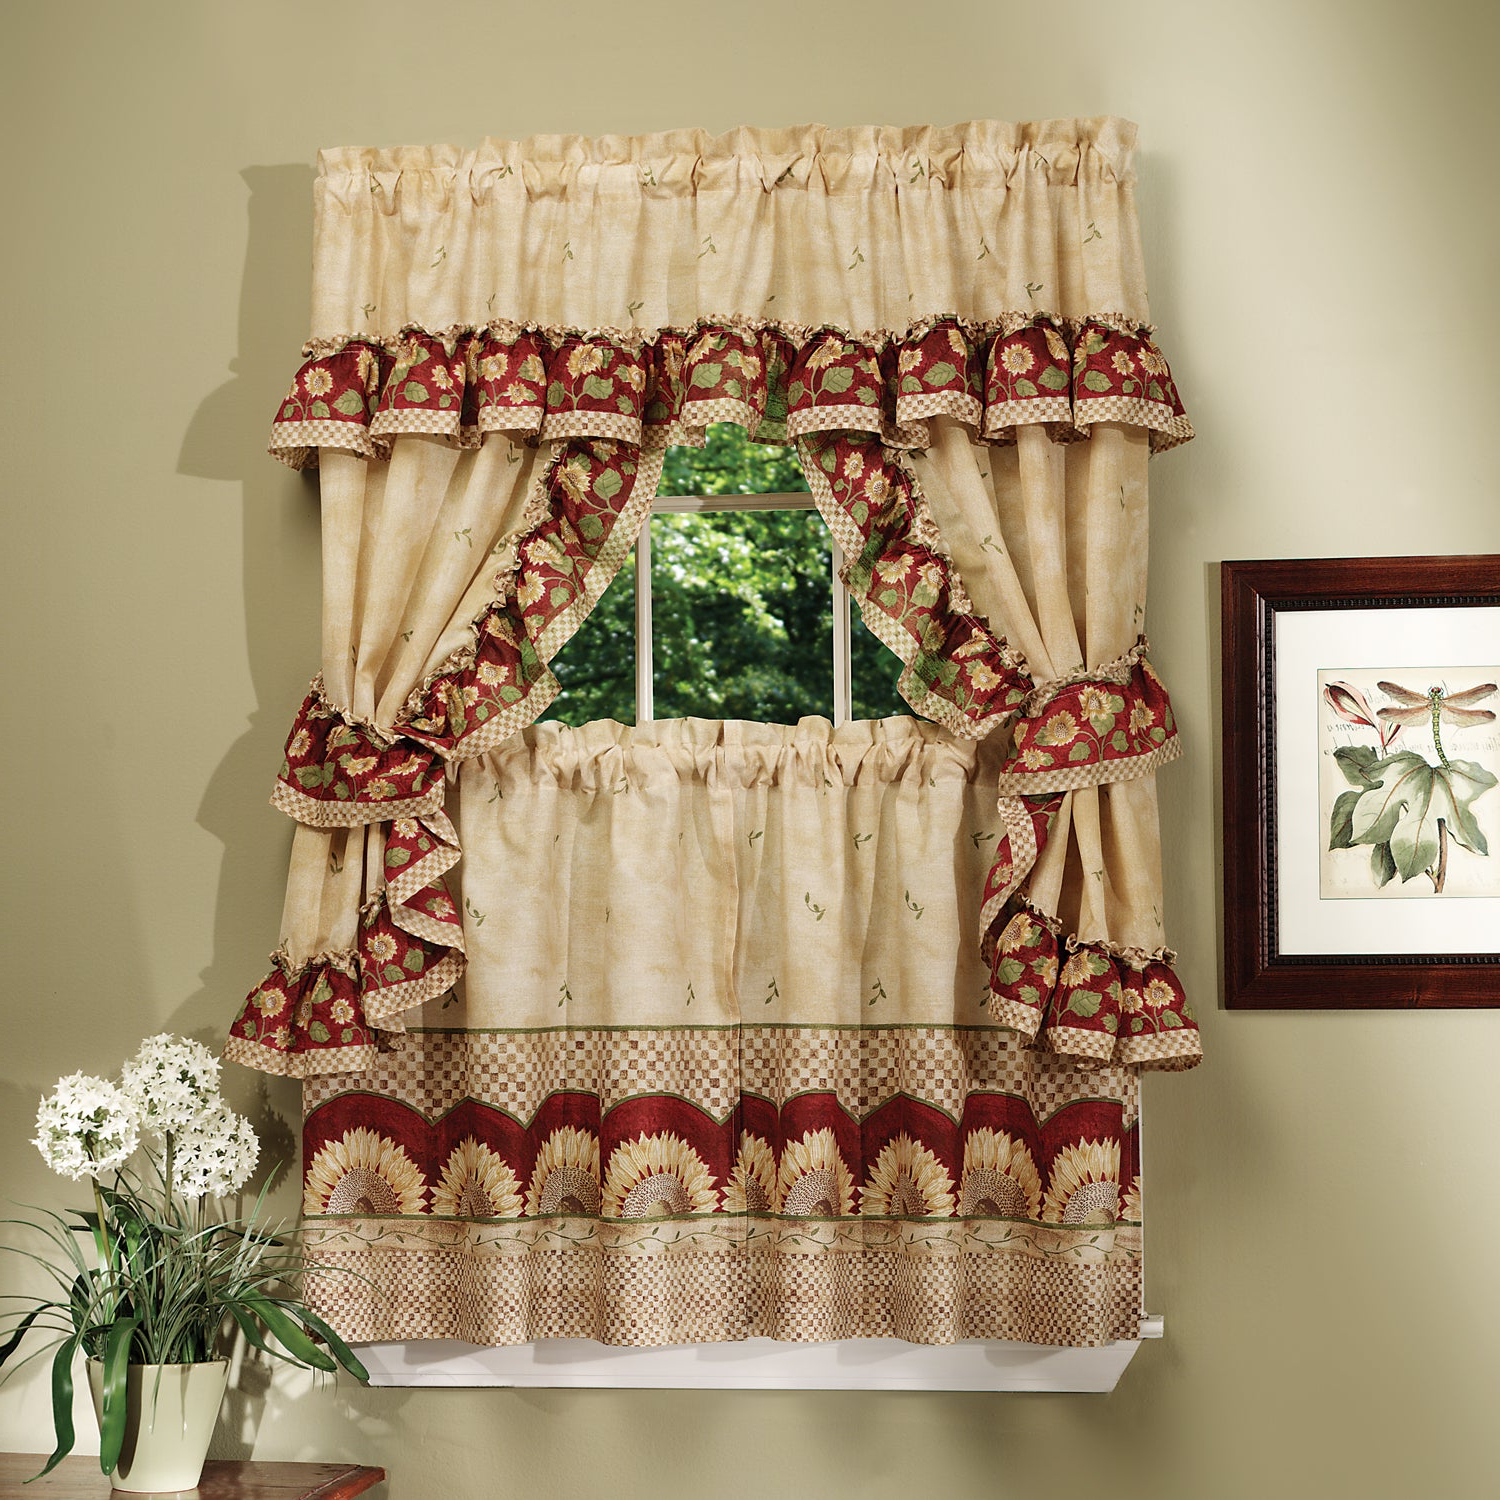 Complete Cottage Curtain Set With A Country Style Sunflower Print – 36 Inch Inside Best And Newest Window Curtains Sets With Colorful Marketplace Vegetable And Sunflower Print (View 3 of 20)